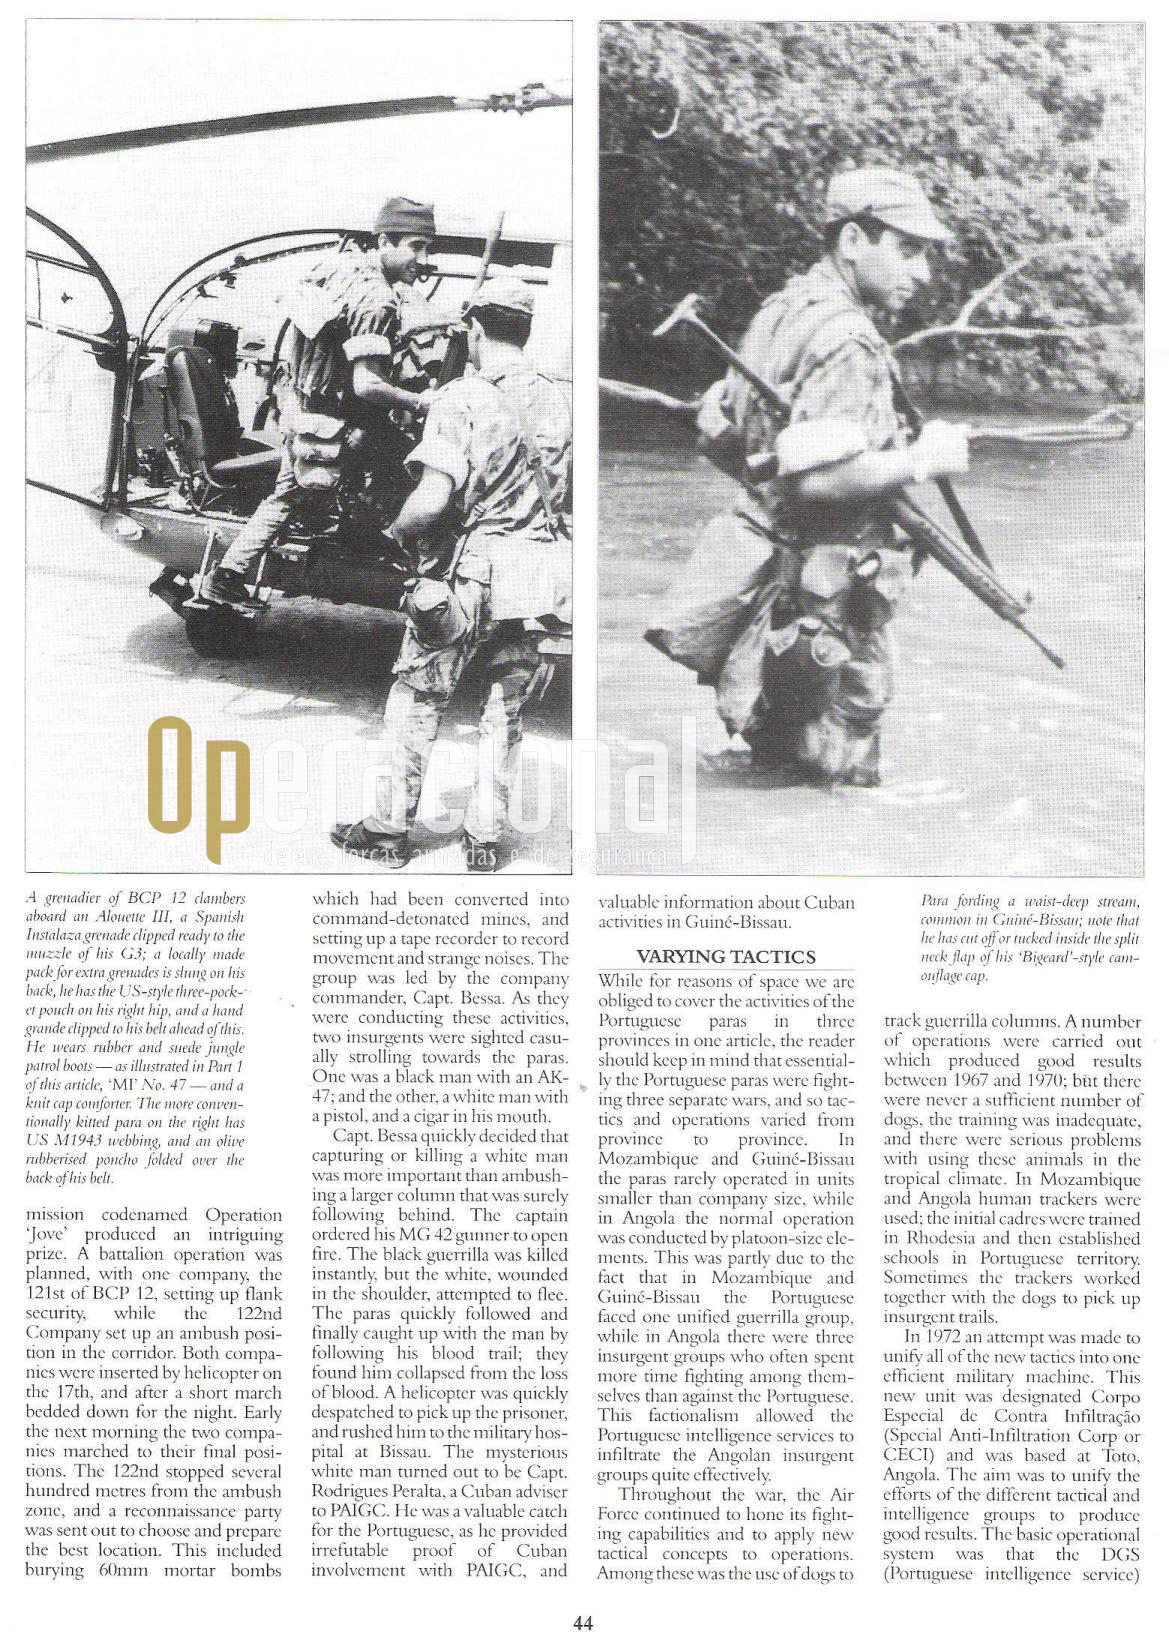 011-military-illustrated-75-copy